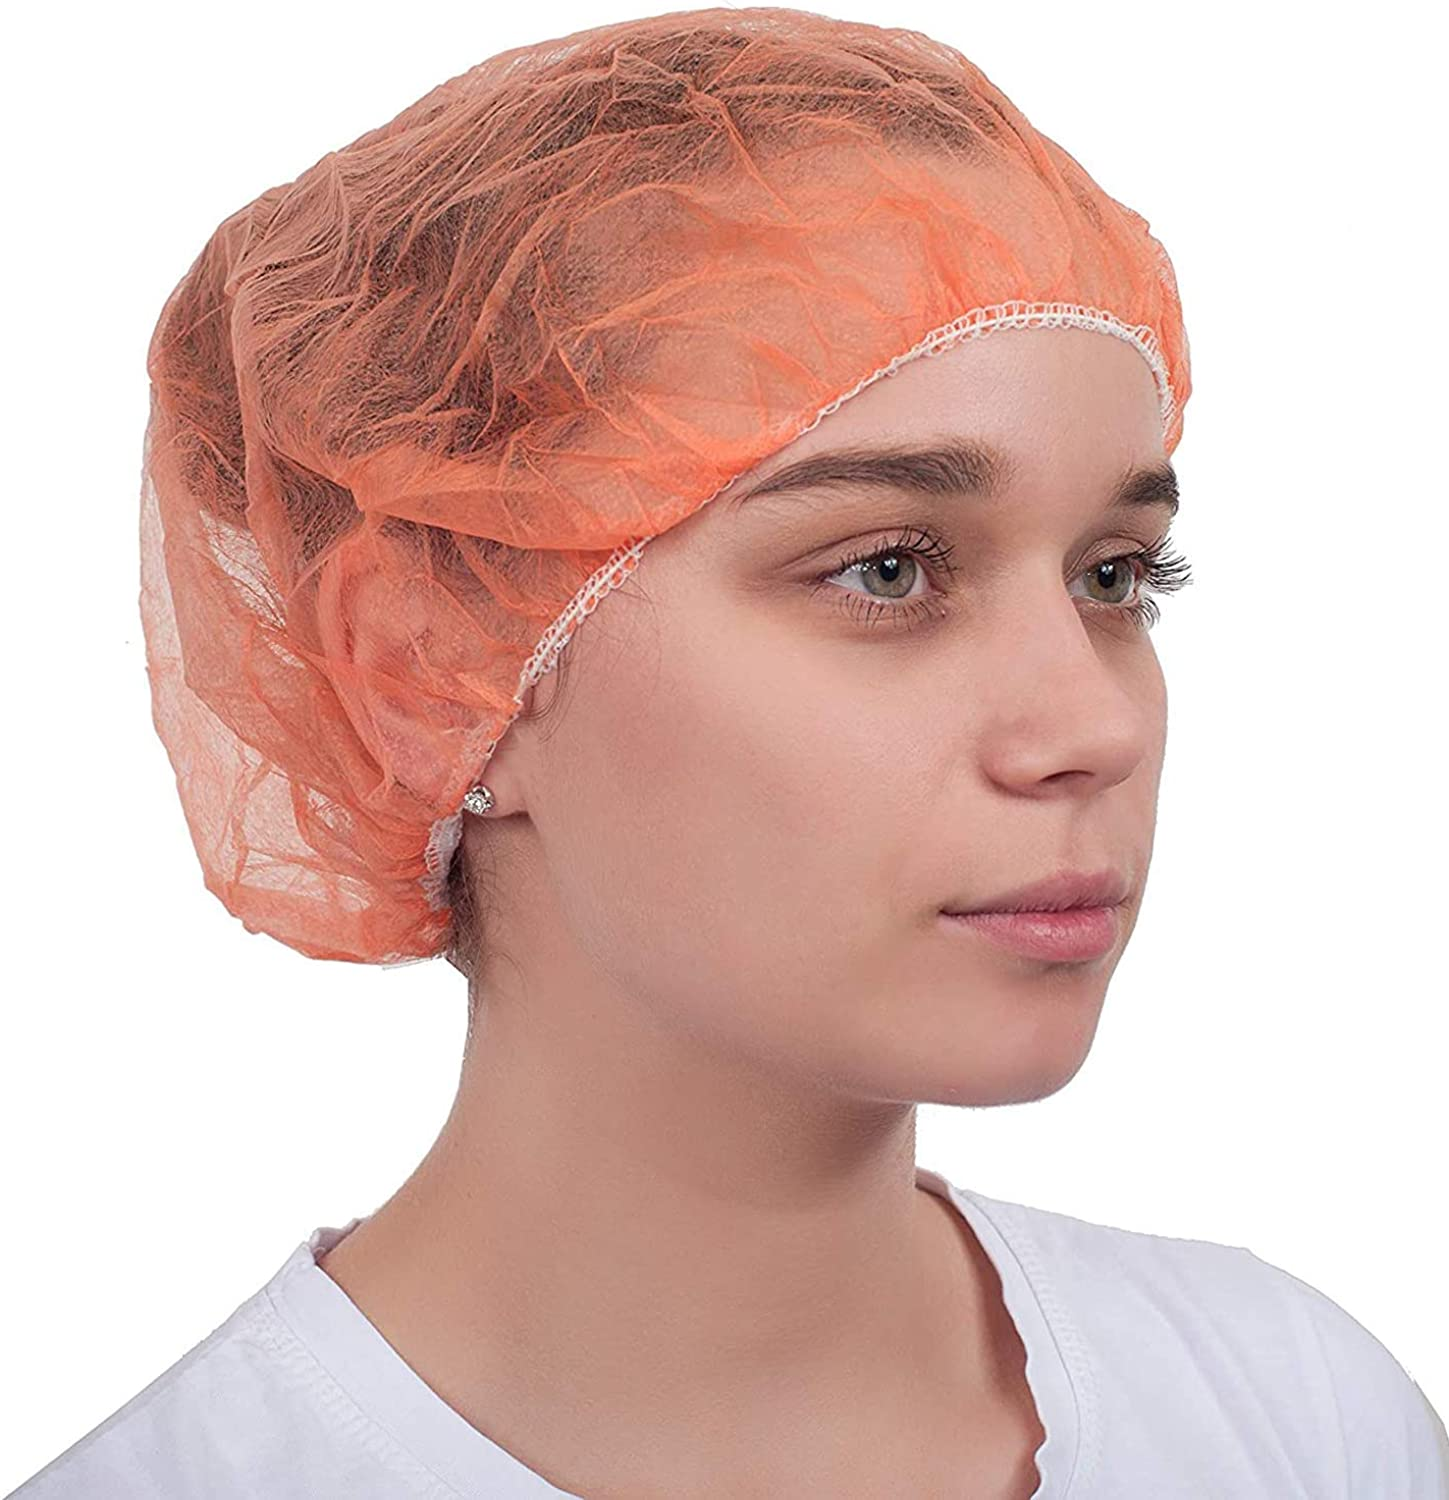 Amazing Bouffant Caps with Elastic Stretch Band. Disposable Protective Hair Hats